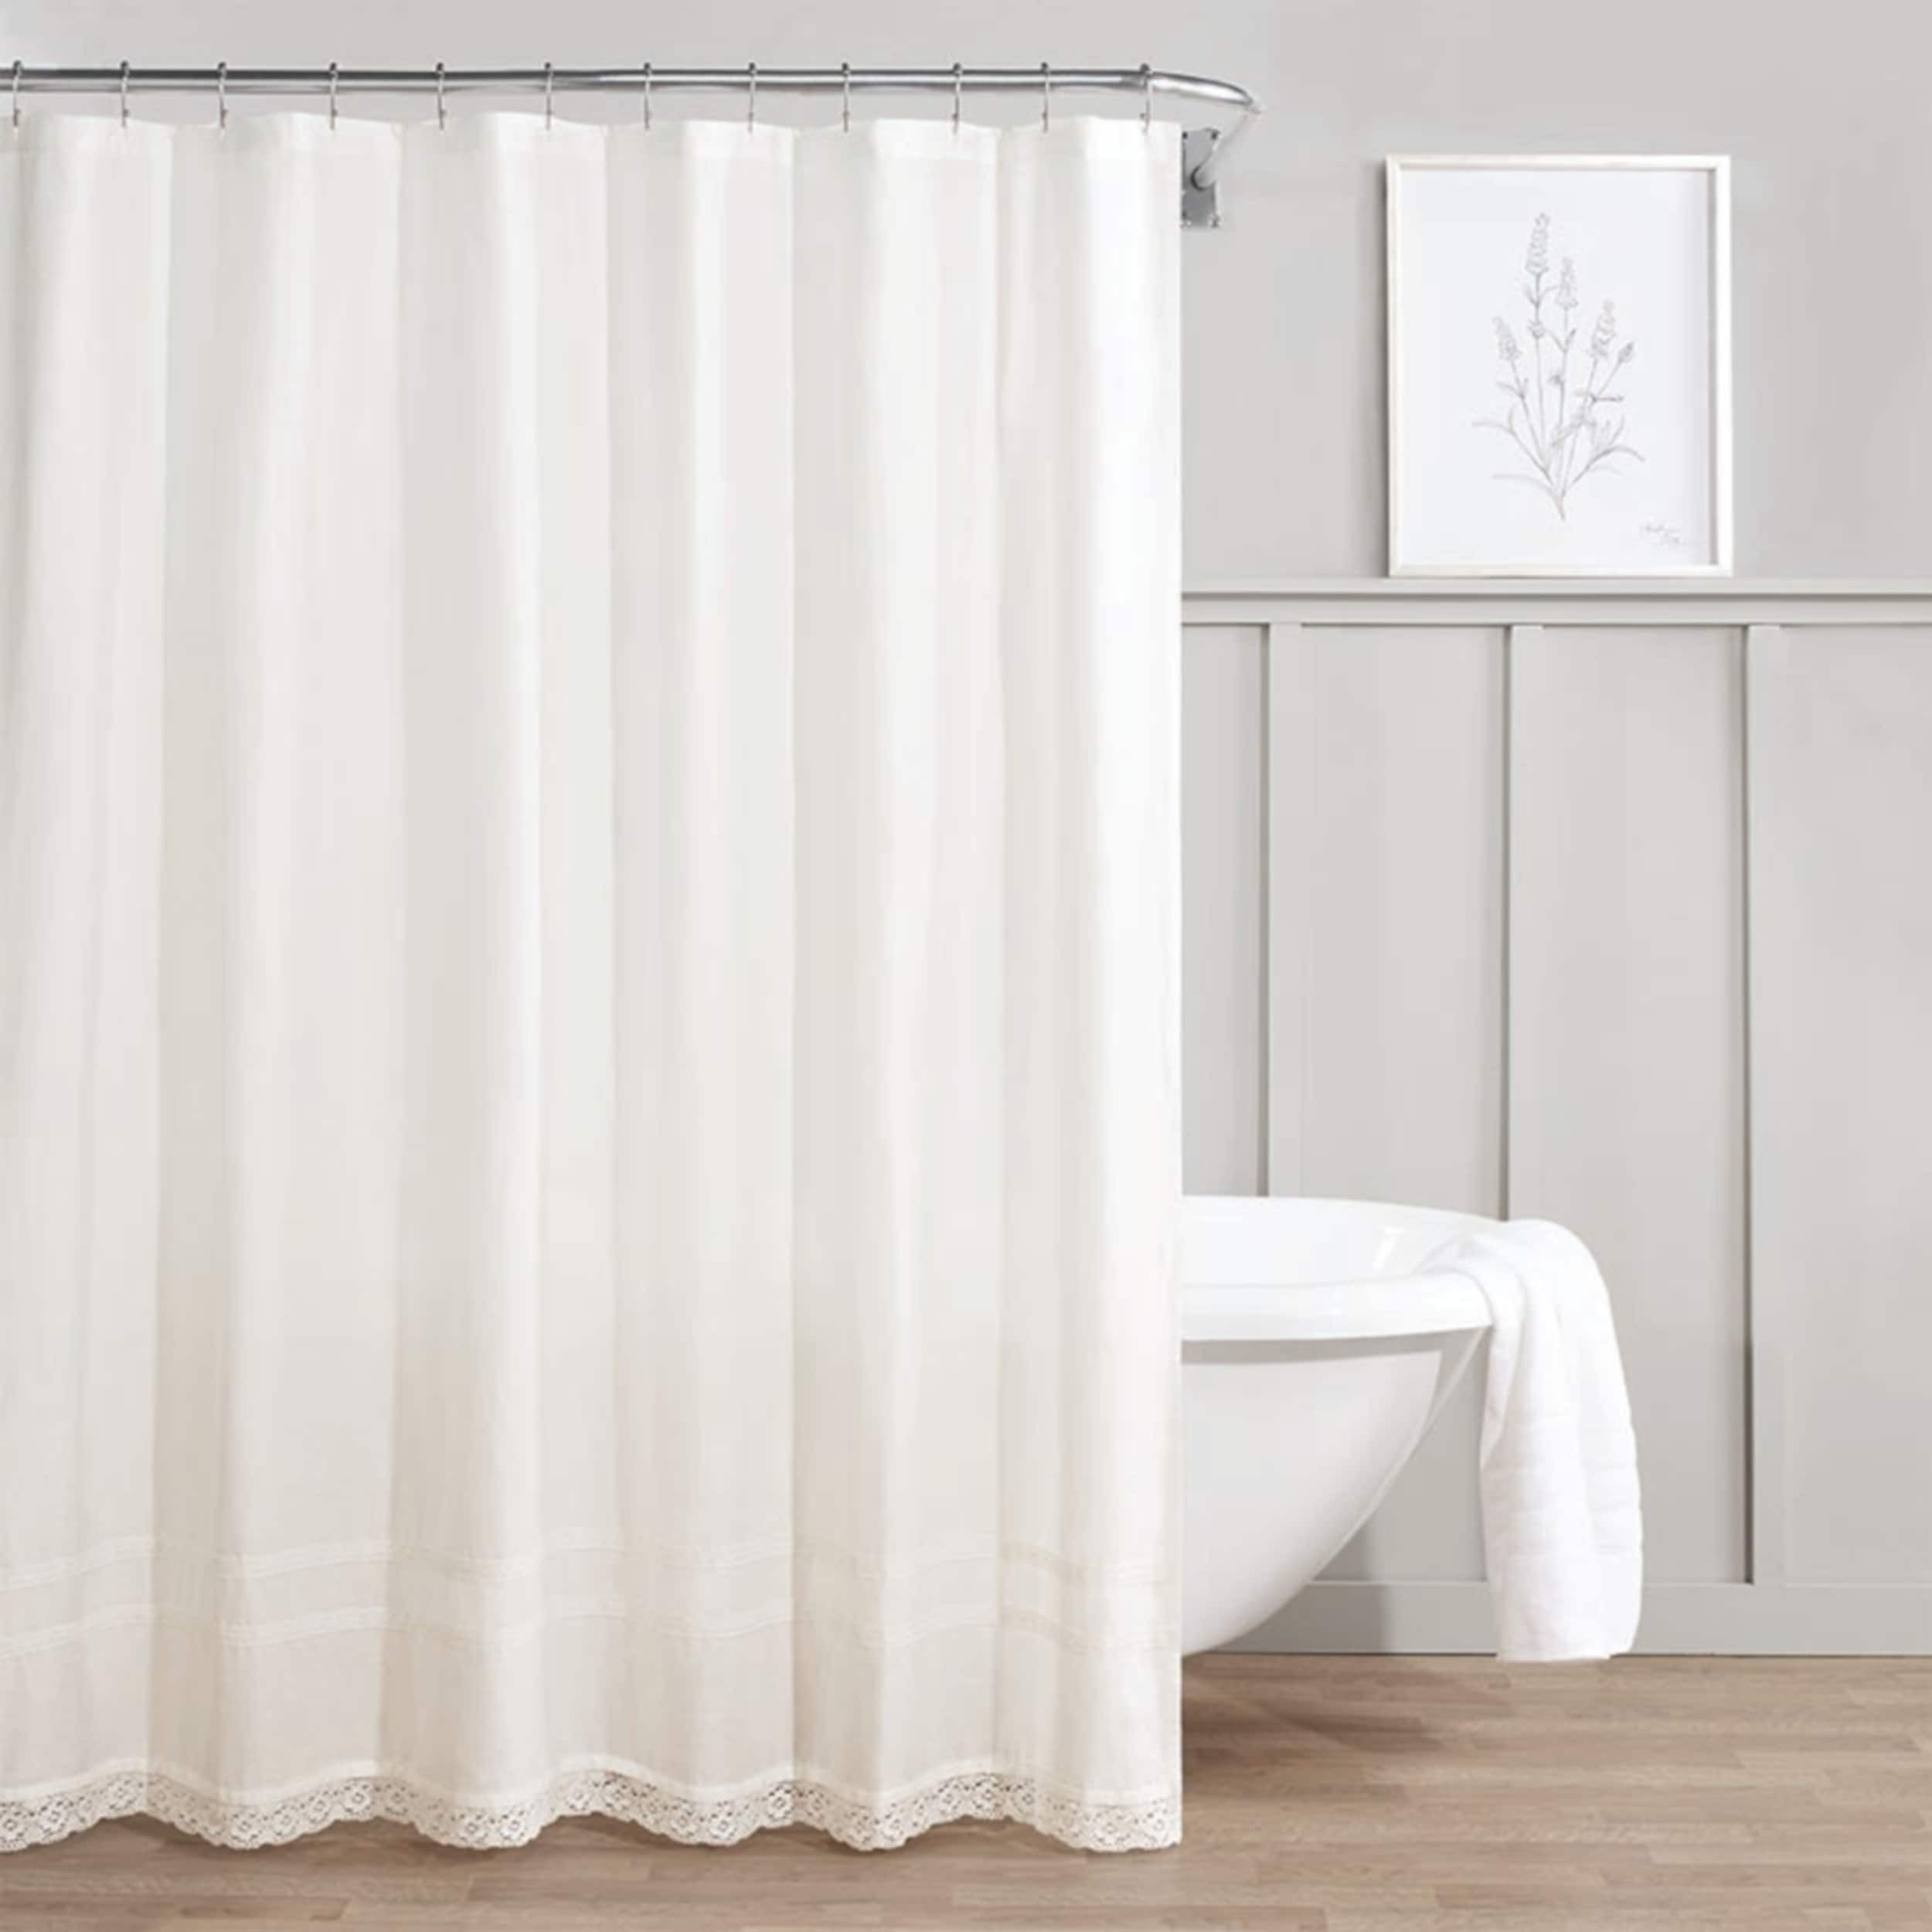 Shop Laura Ashley Annabella White Shower Curtain